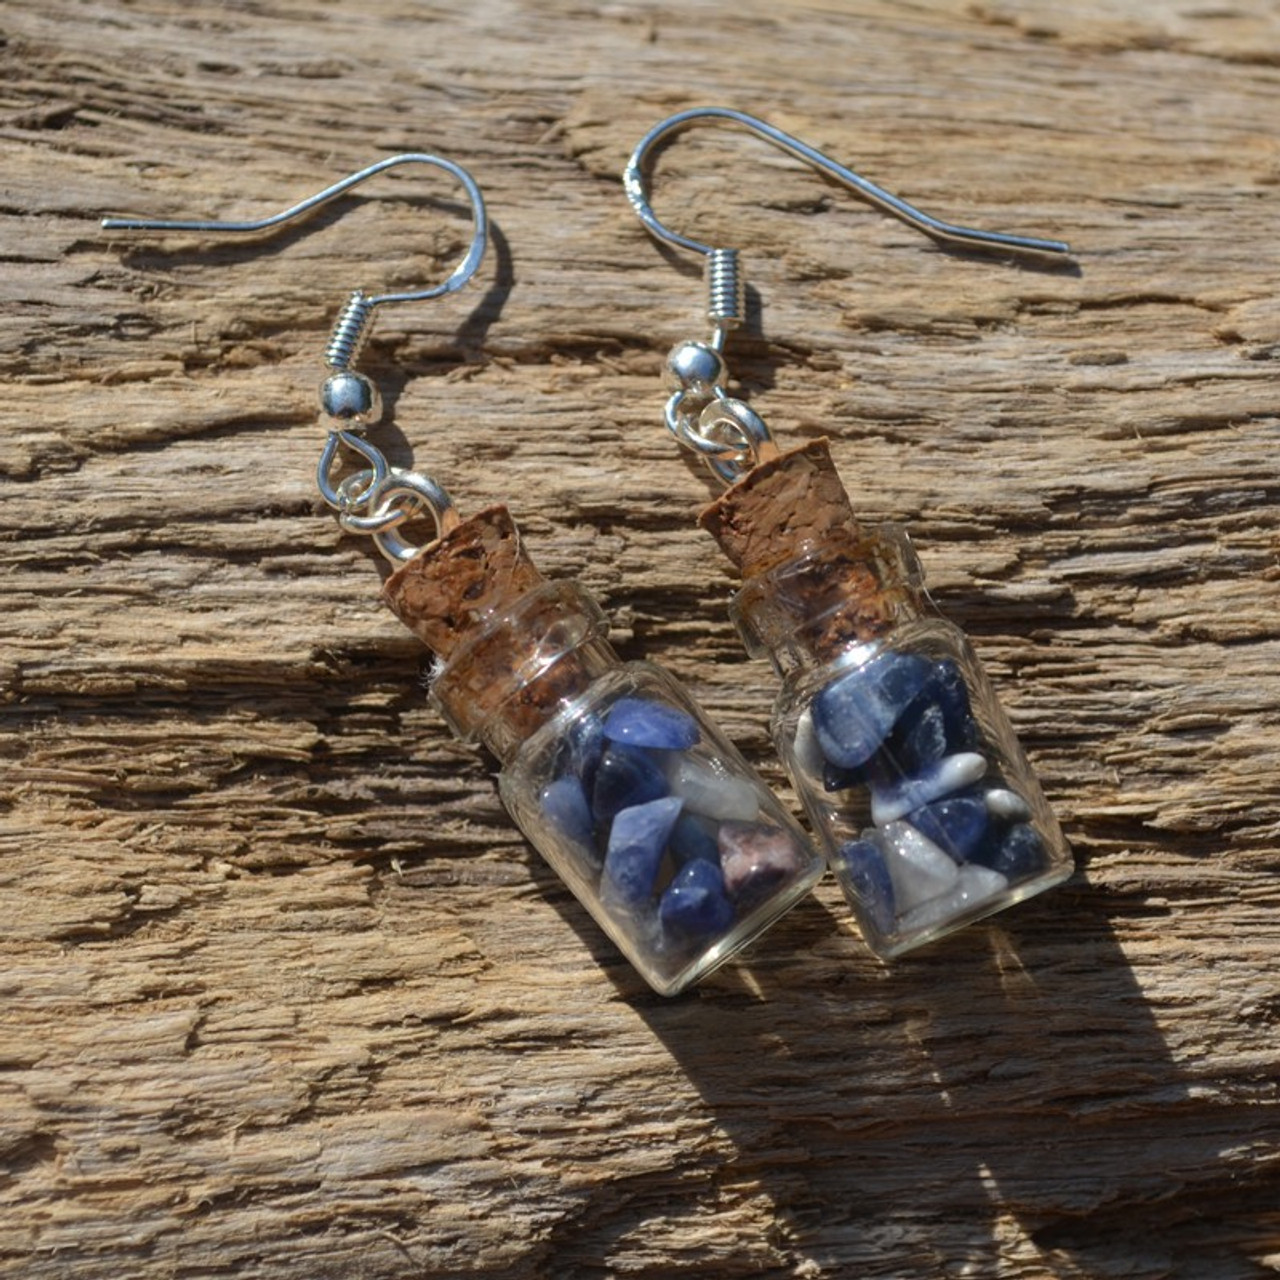 Sodalite Stones in Delicate Glass Vial Earrings - Made to Order